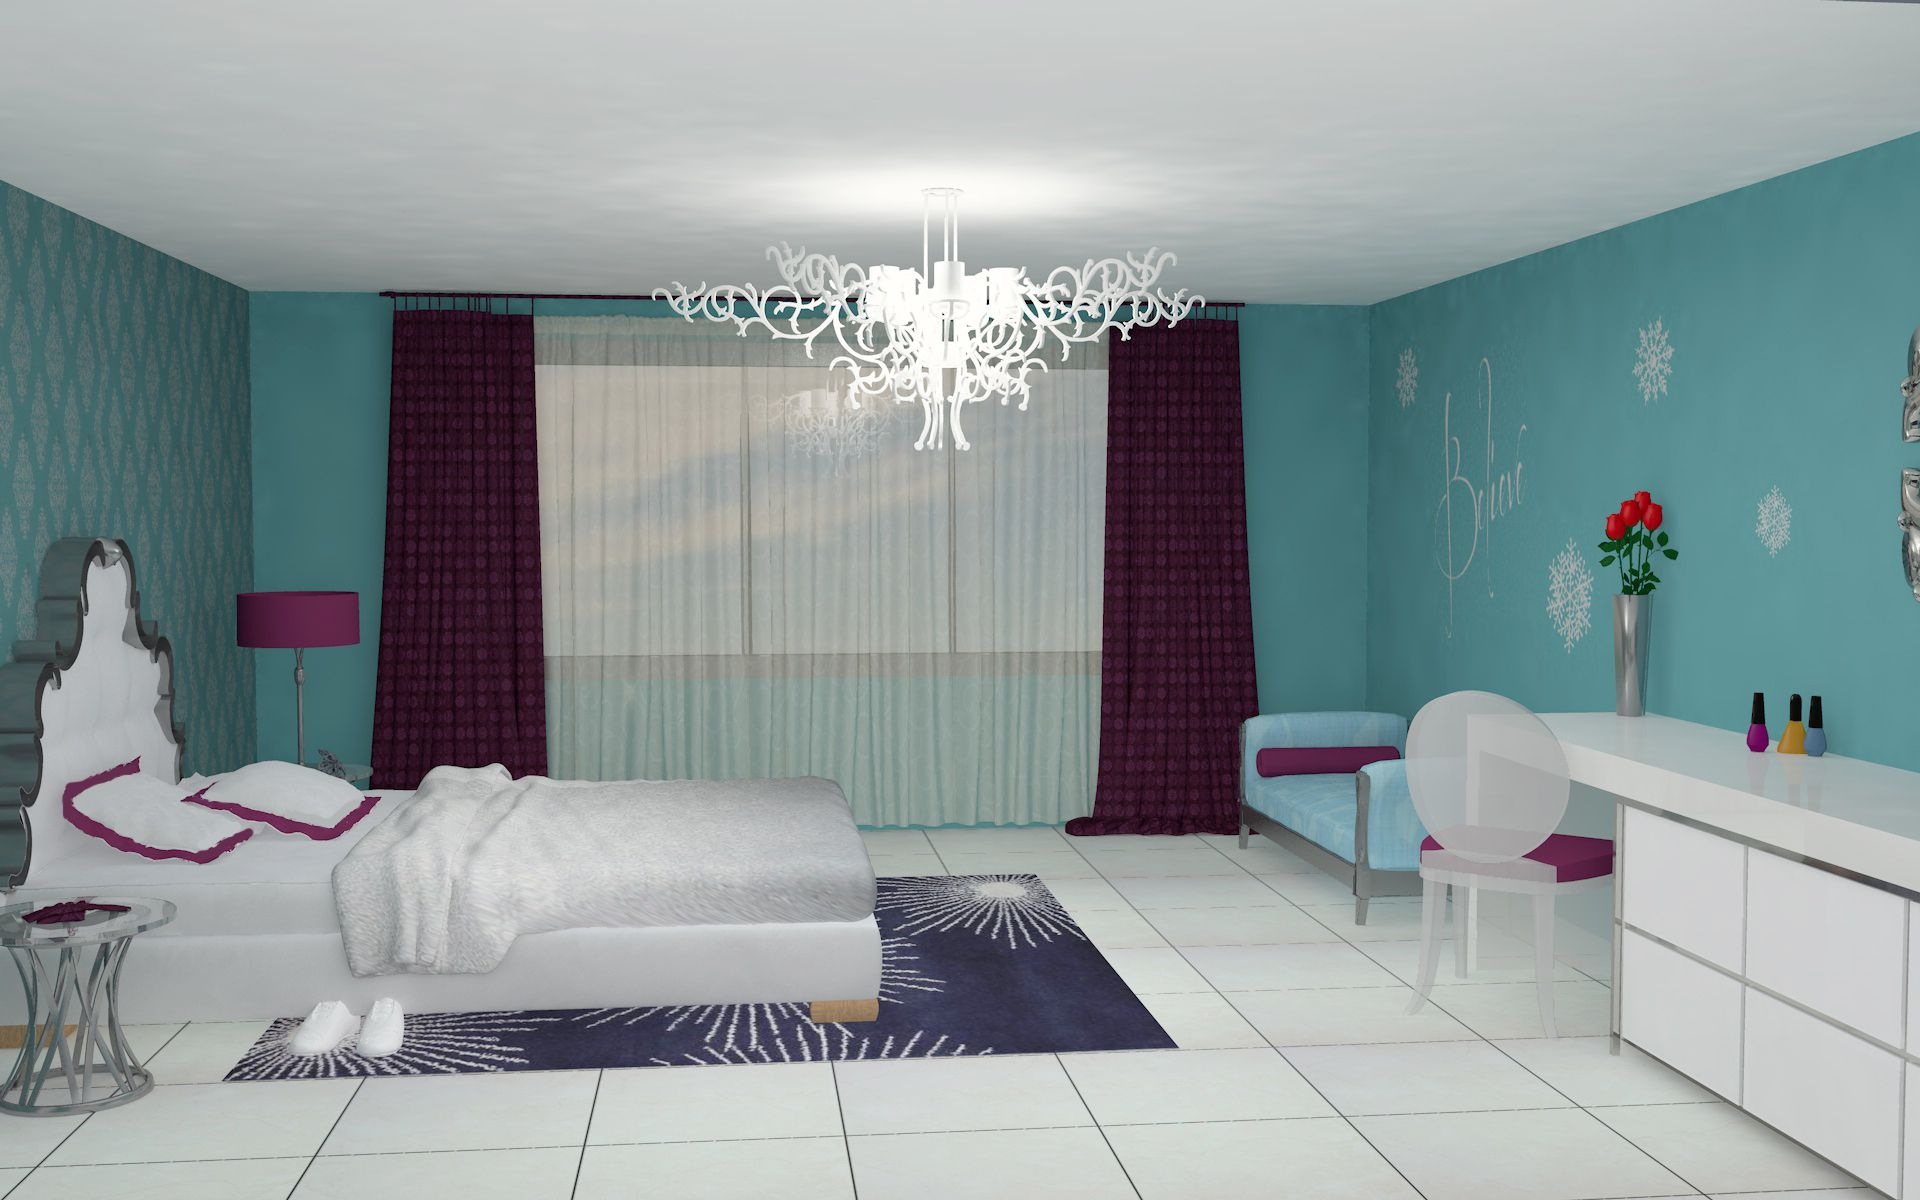 Frozen inspired bedroom - 1000 Images About Bedroom On Pinterest Snowflakes Art Decor And Light Switches